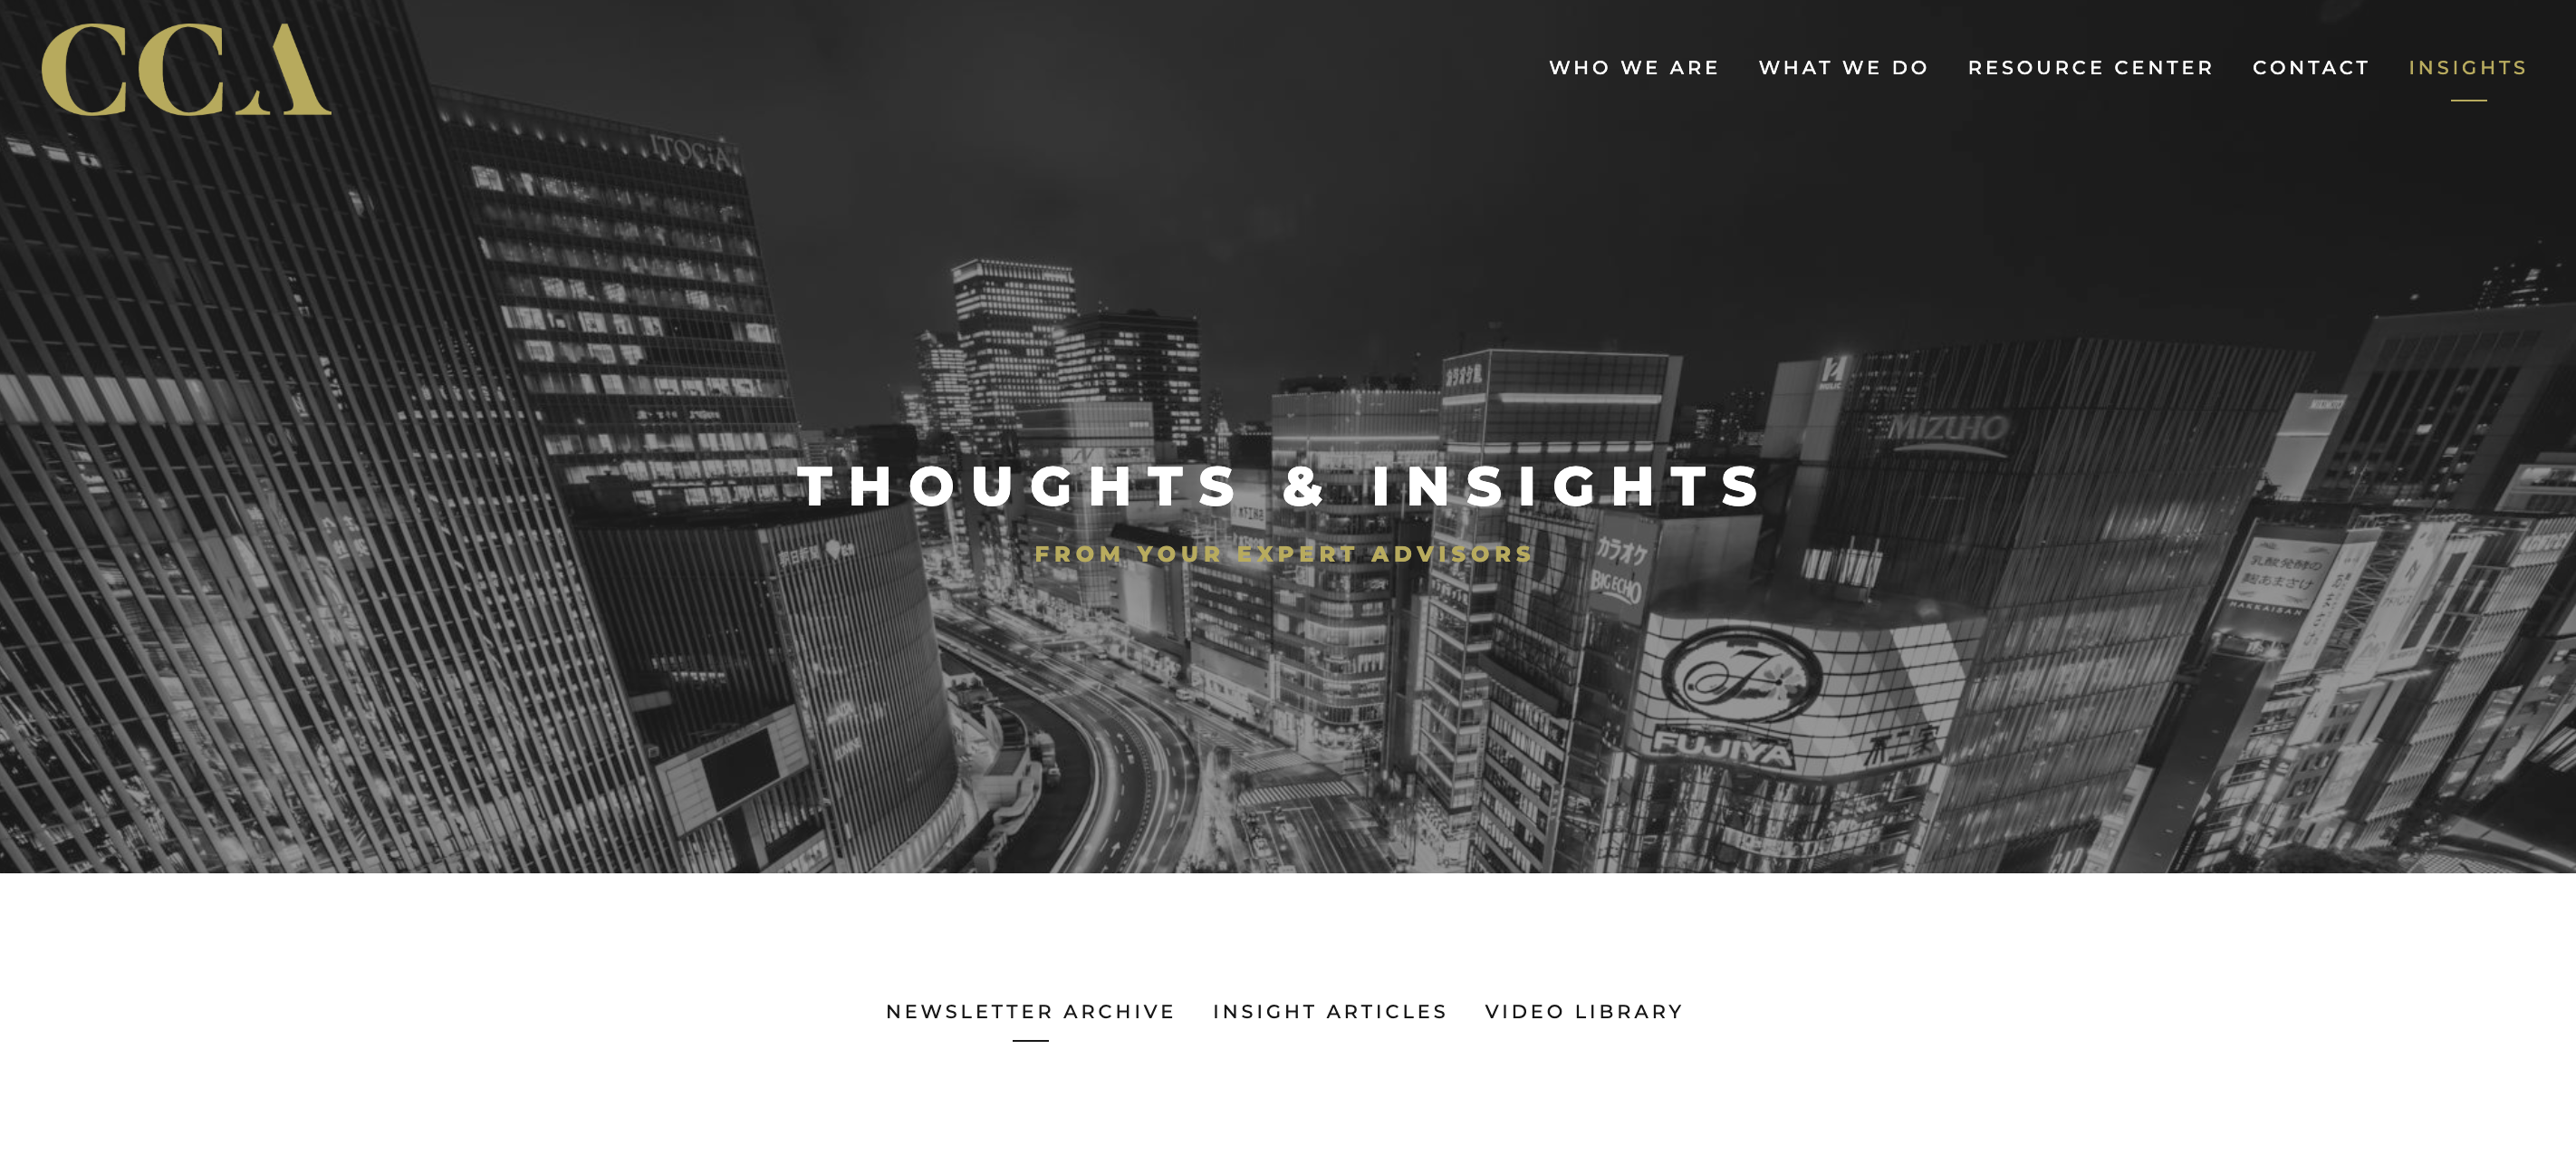 insights blog example from financial advisor, centric capital advisors